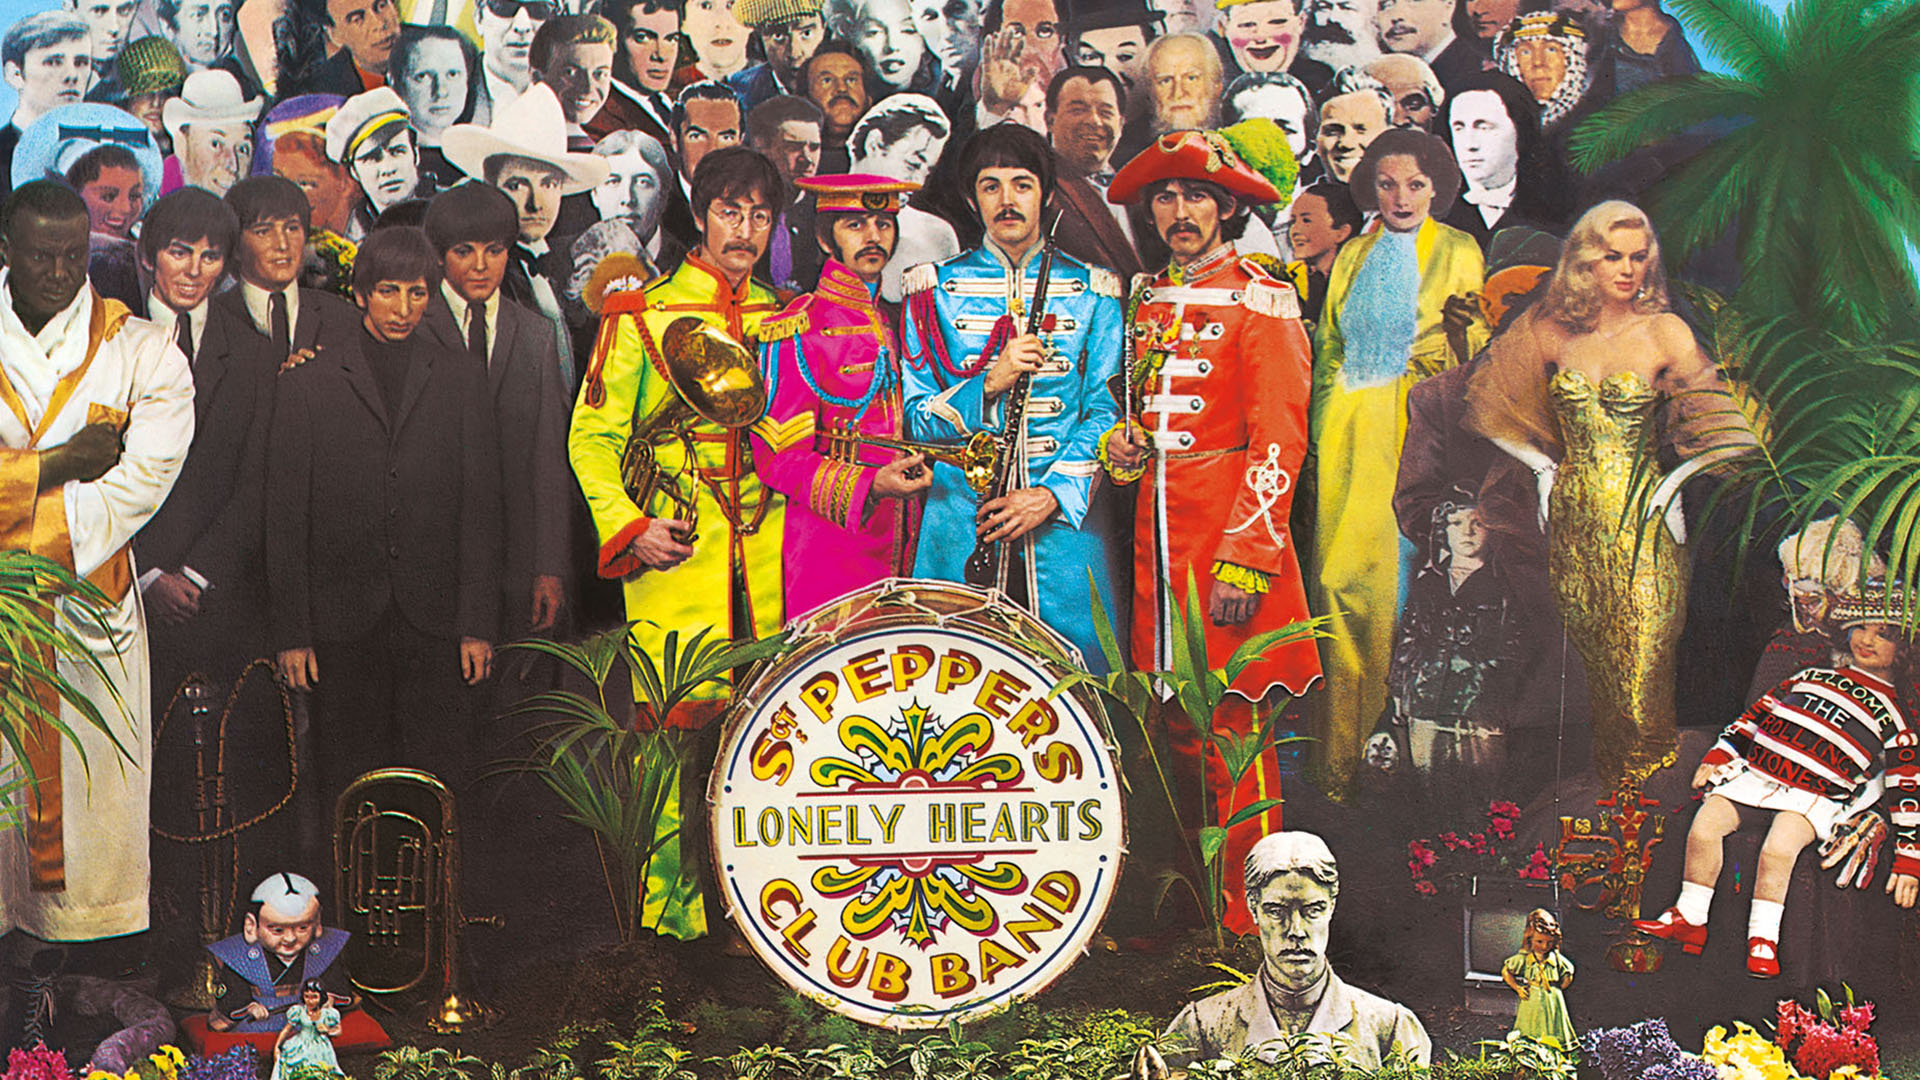 August pledge drive to feature Beatles, Journey, Emmylou Harris, more